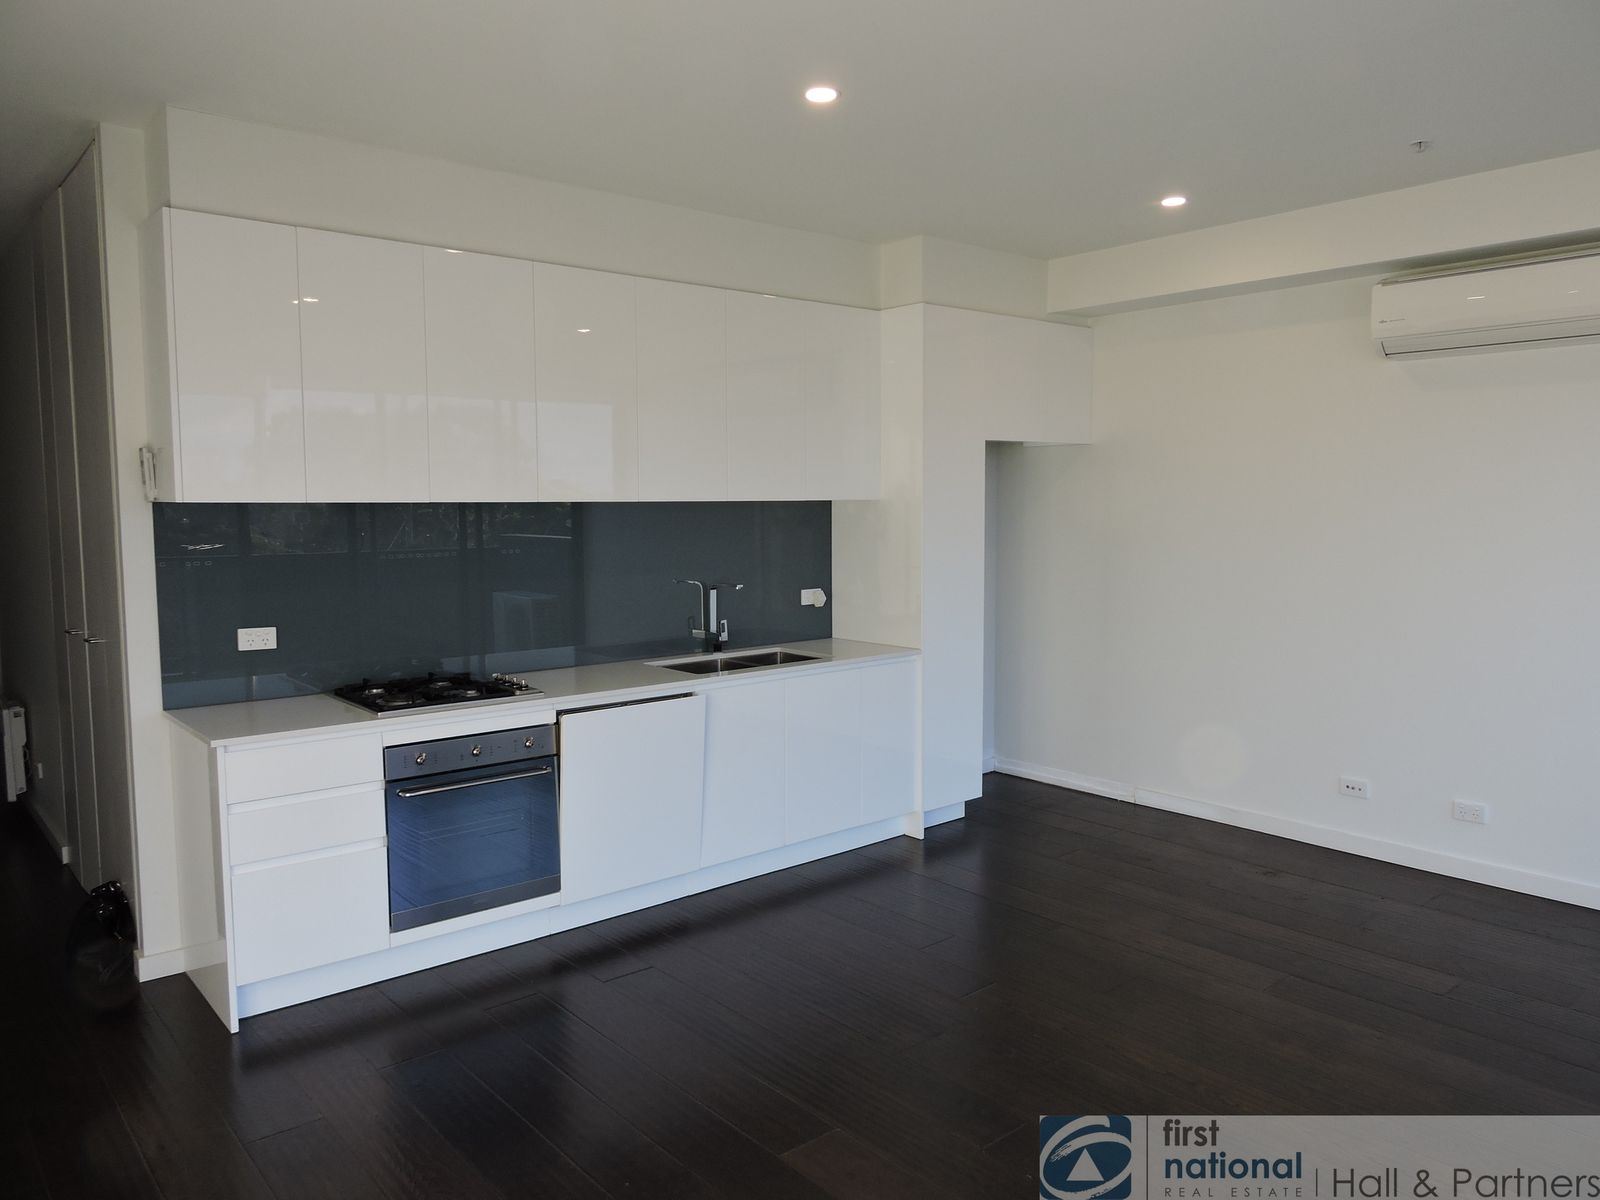 201/451 South Road, Bentleigh, VIC 3204